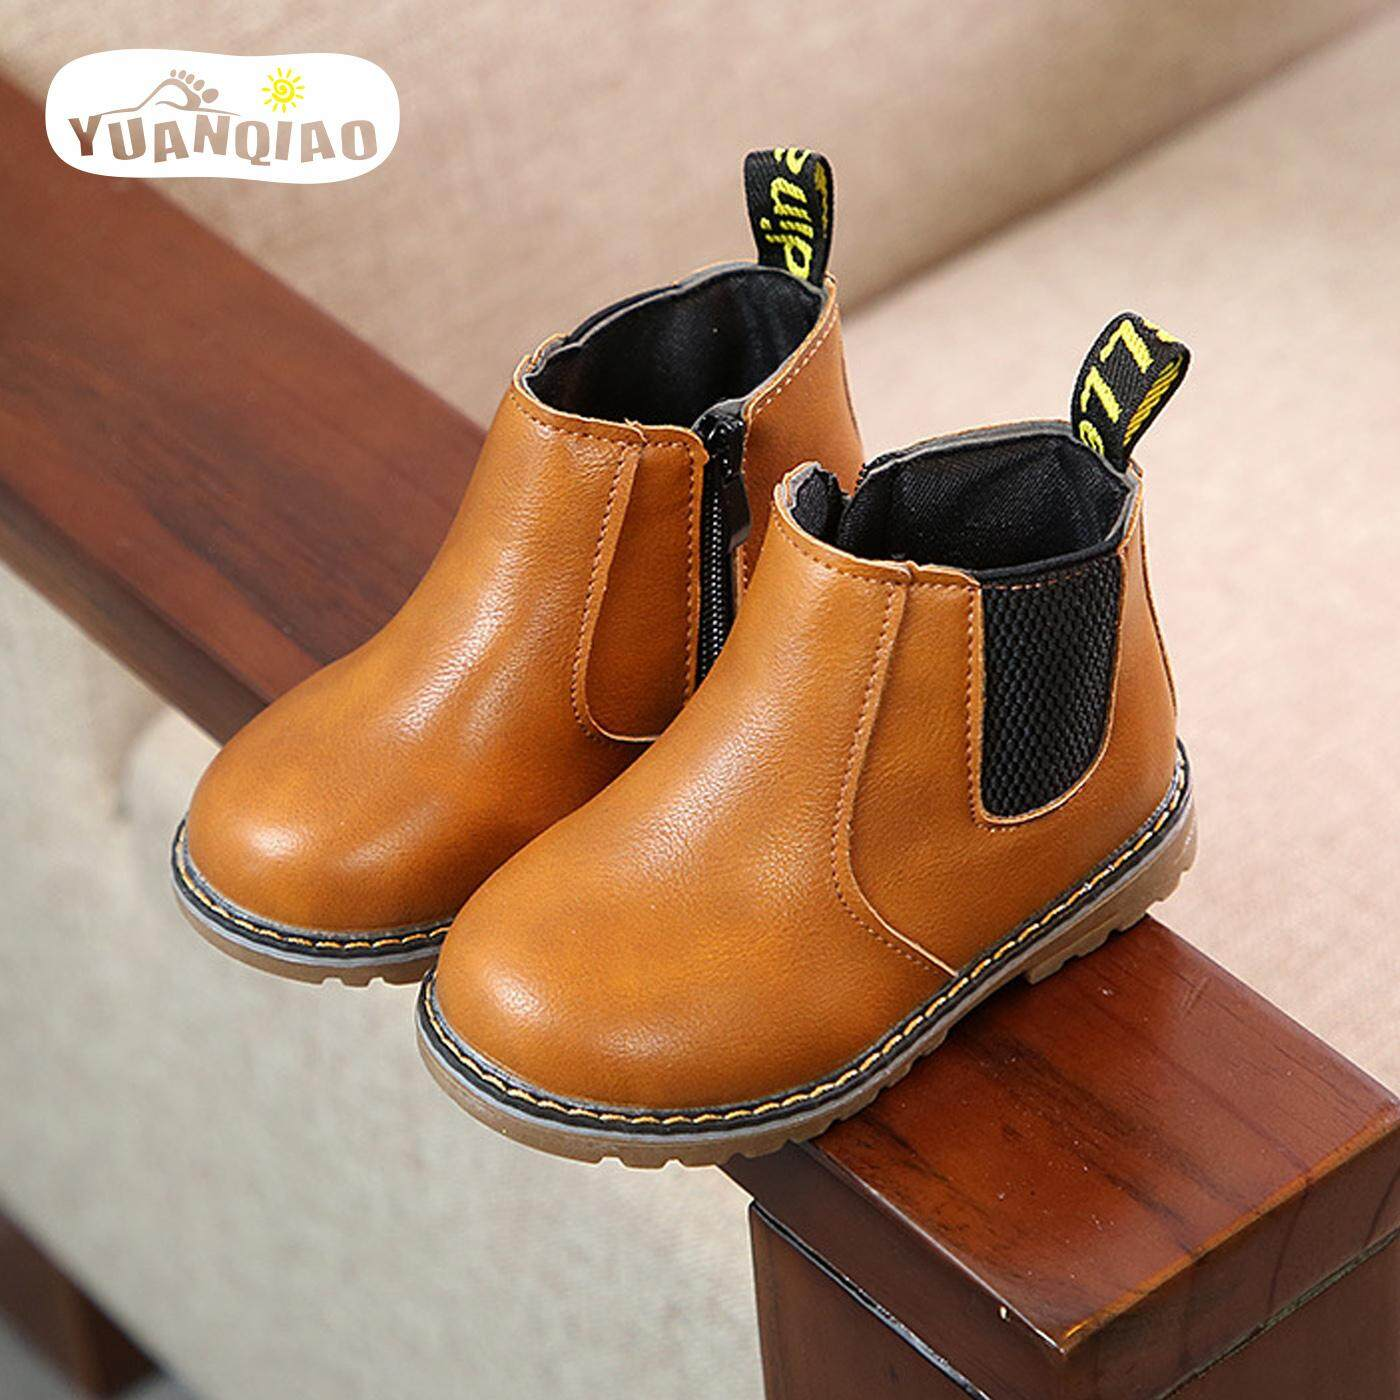 bee7dd871ac8 YUANQIAO Children Shoes Non-slip Side Zip Boys Girls Martin Boots Kids  Students Boots 2